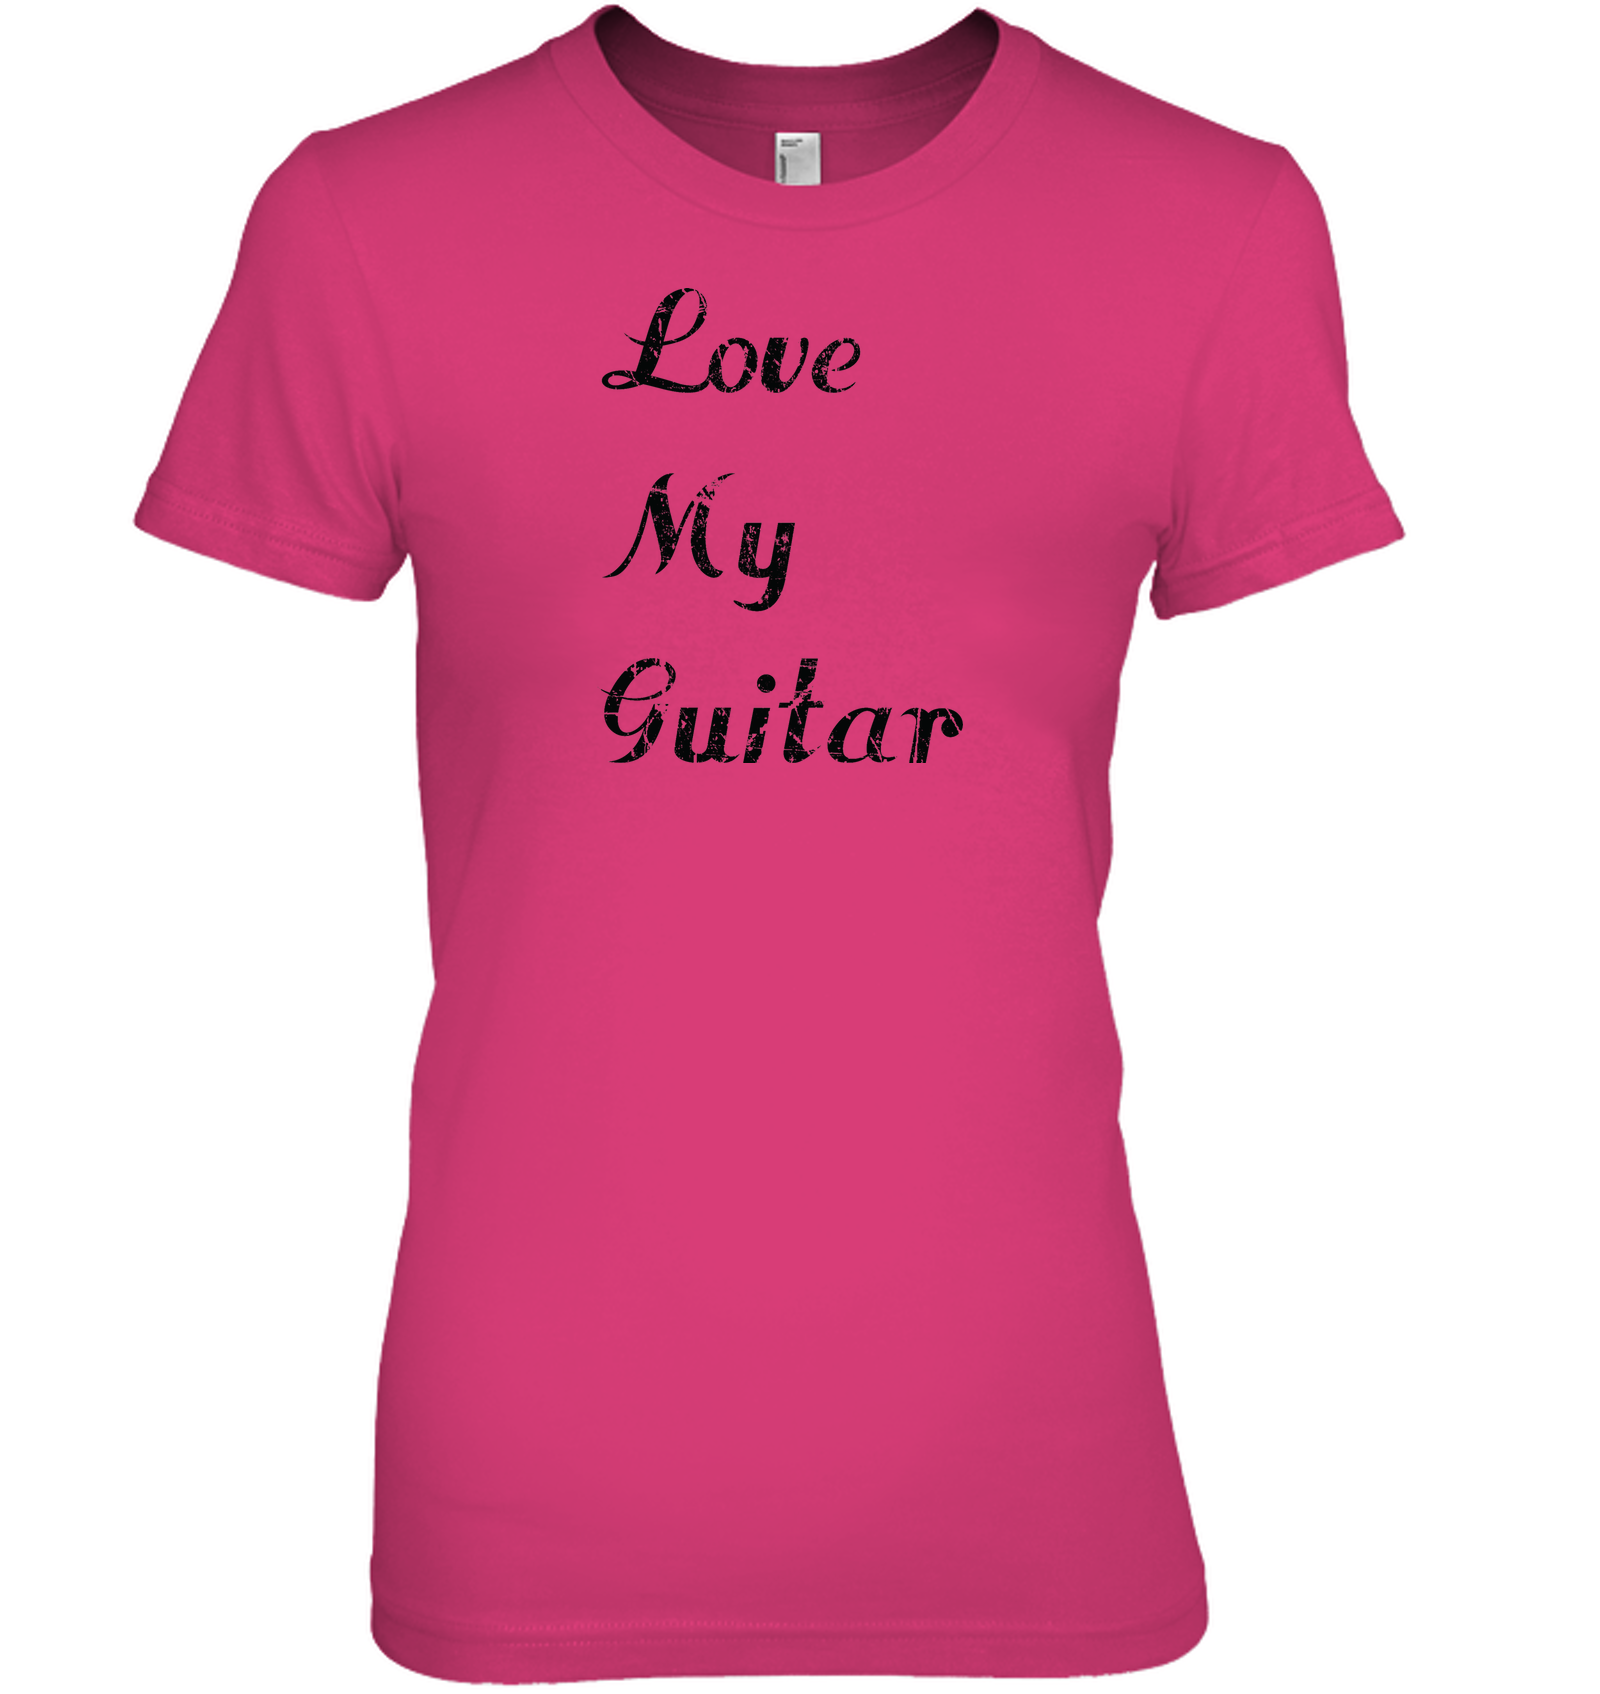 Love My Guitar simple and true - Hanes Women's Nano-T® T-shirt